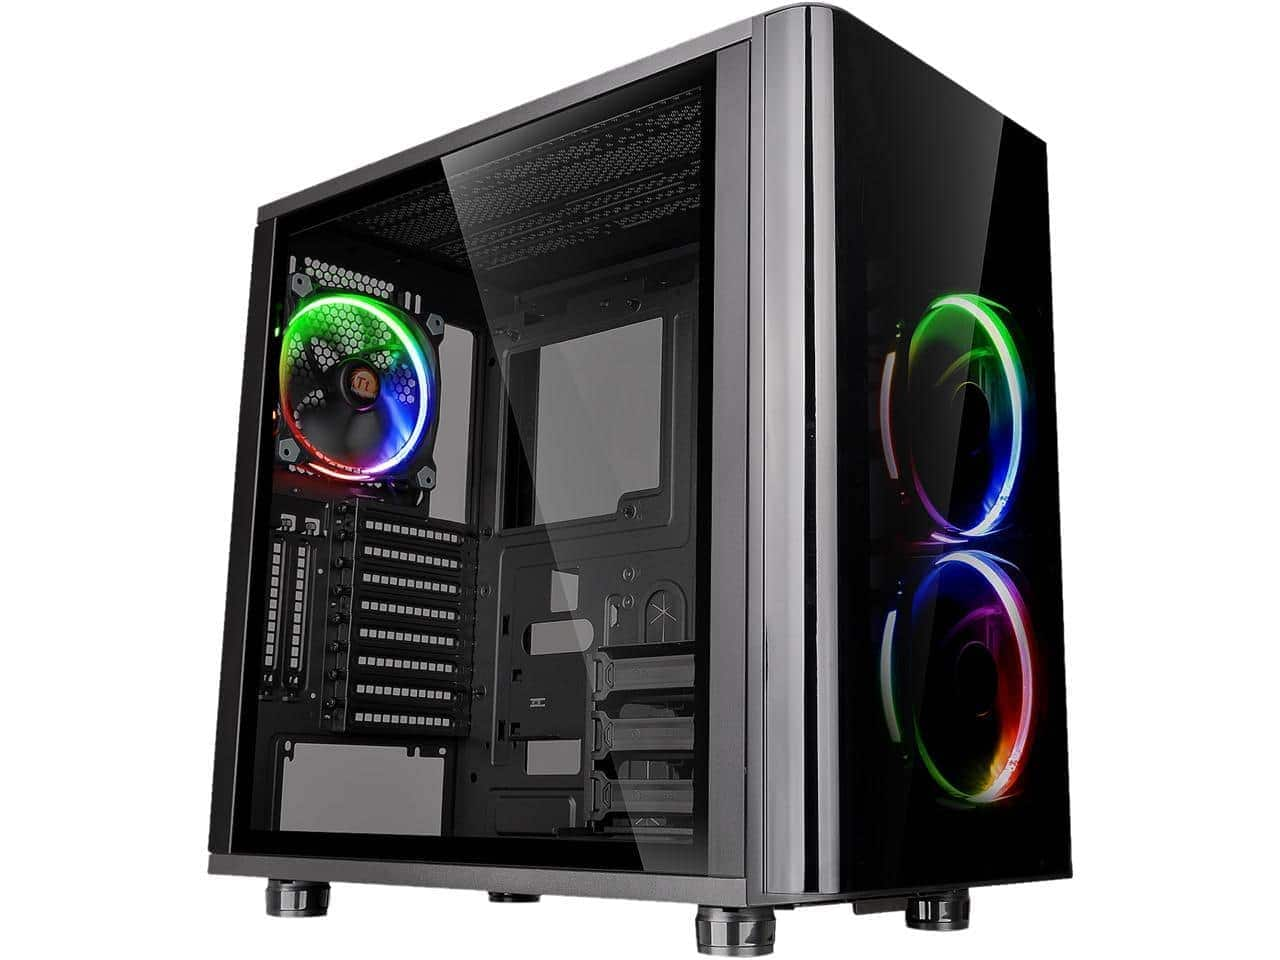 Thermaltake CA-1H8-00M1WN-01 View 31 RGB ATX Black Gaming Mid Tower Computer Case - $74.99 (after $35 Mail-in Rebate) + Free Shipping